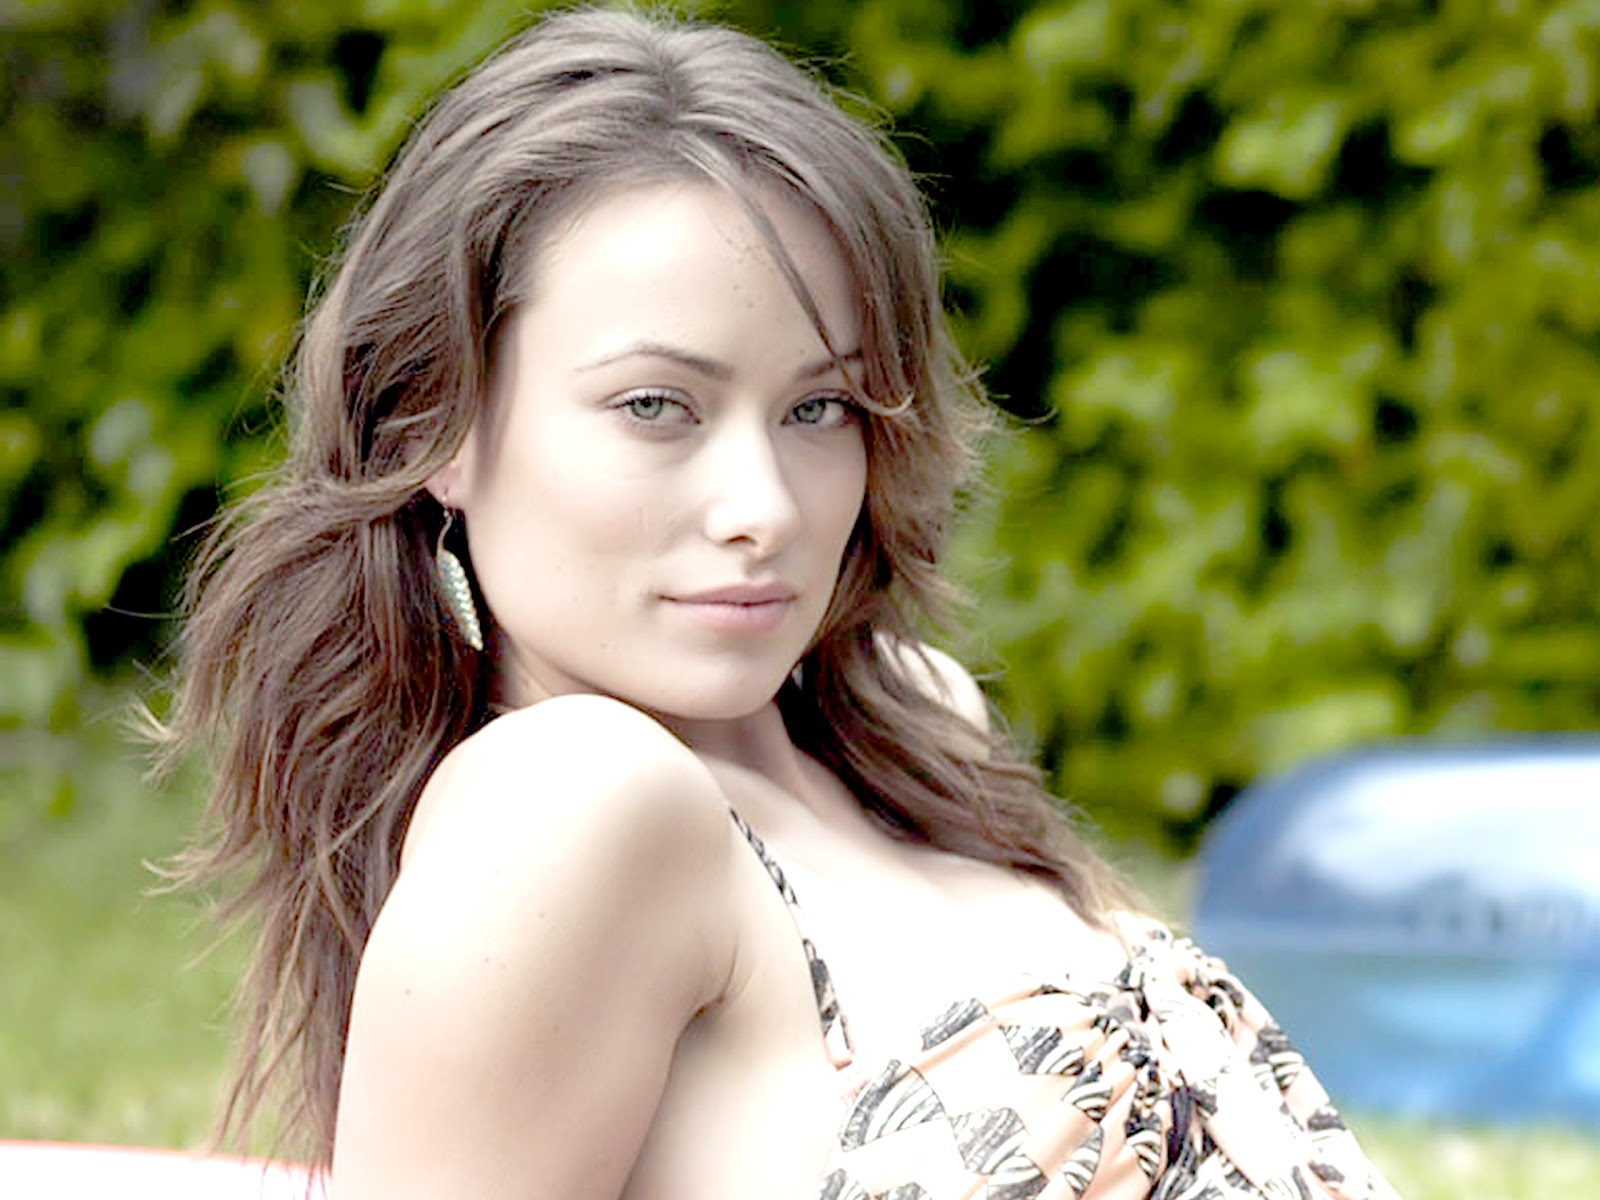 Lovely Wallpapers Olivia Wilde Cute And Lovely Wallpapers -3654